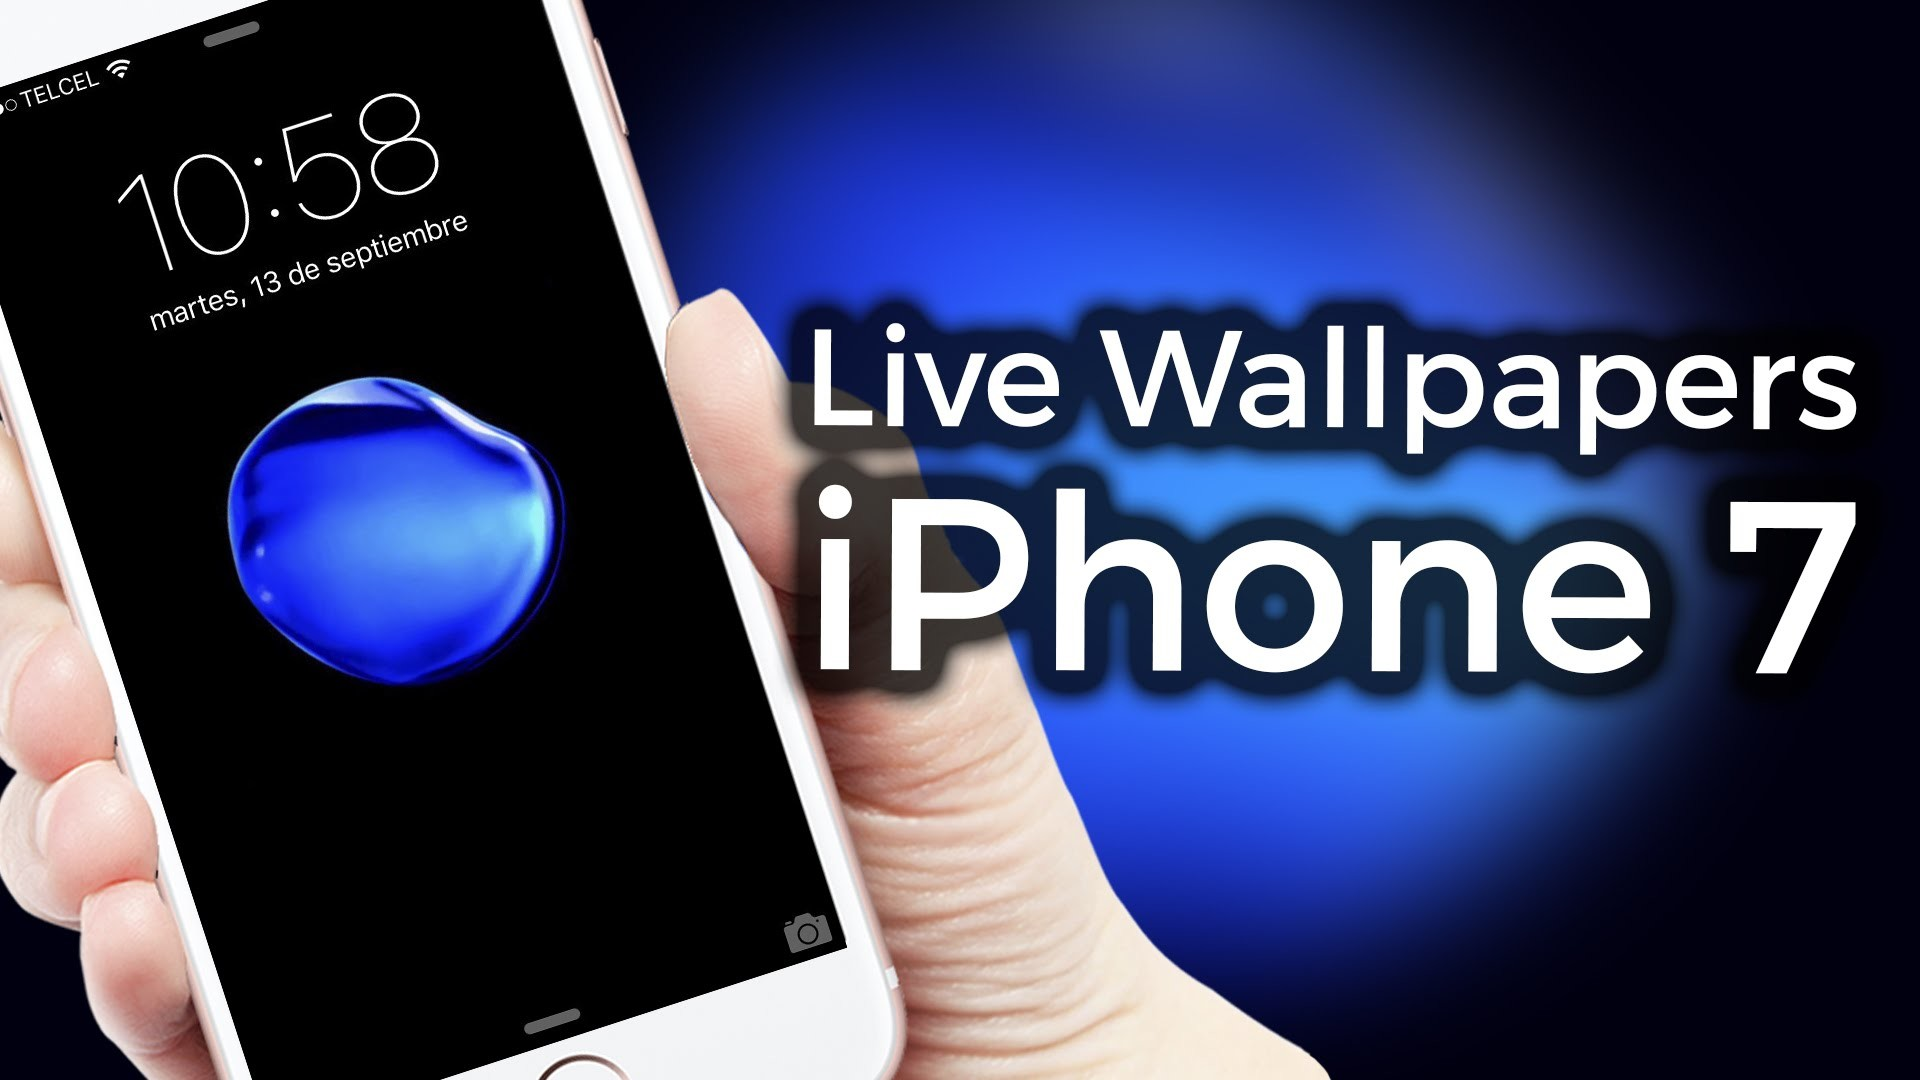 1920x1080 iPhone 7 Live Wallpapers, iPhone 5S,6,6S Cydia tweak | ZIDACO